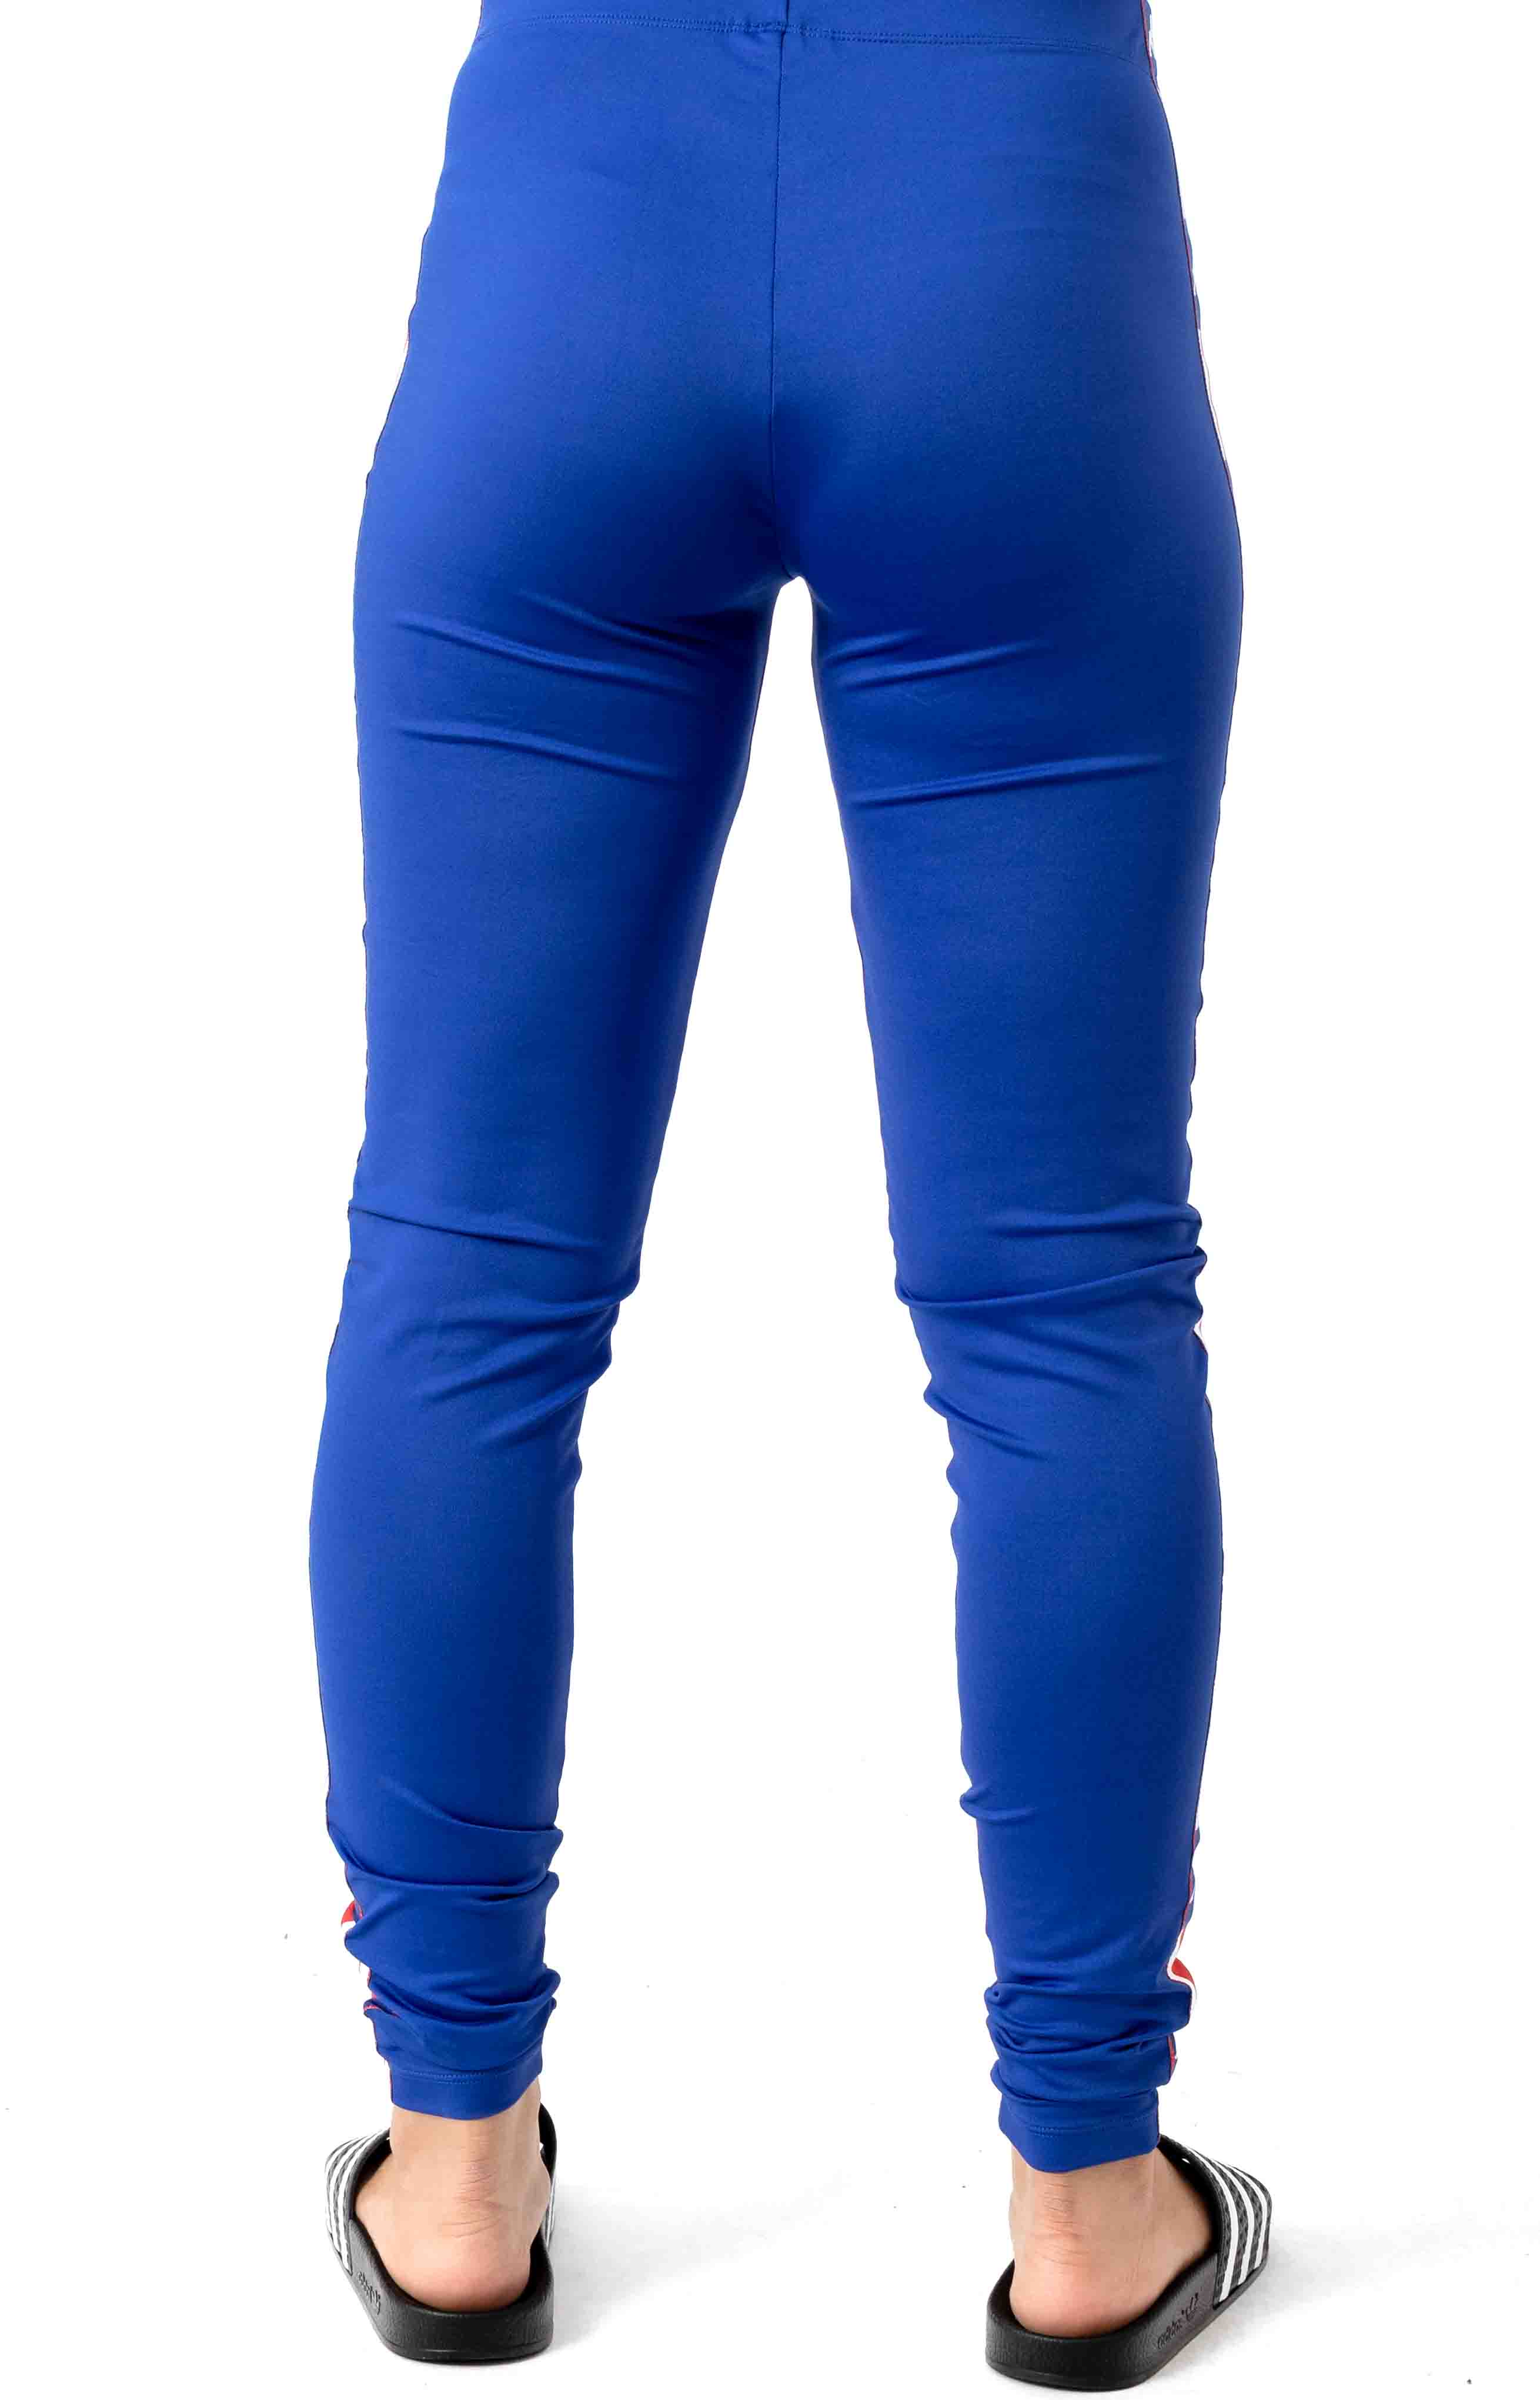 Authentic LA Baward Leggings - Blue/Blue 3